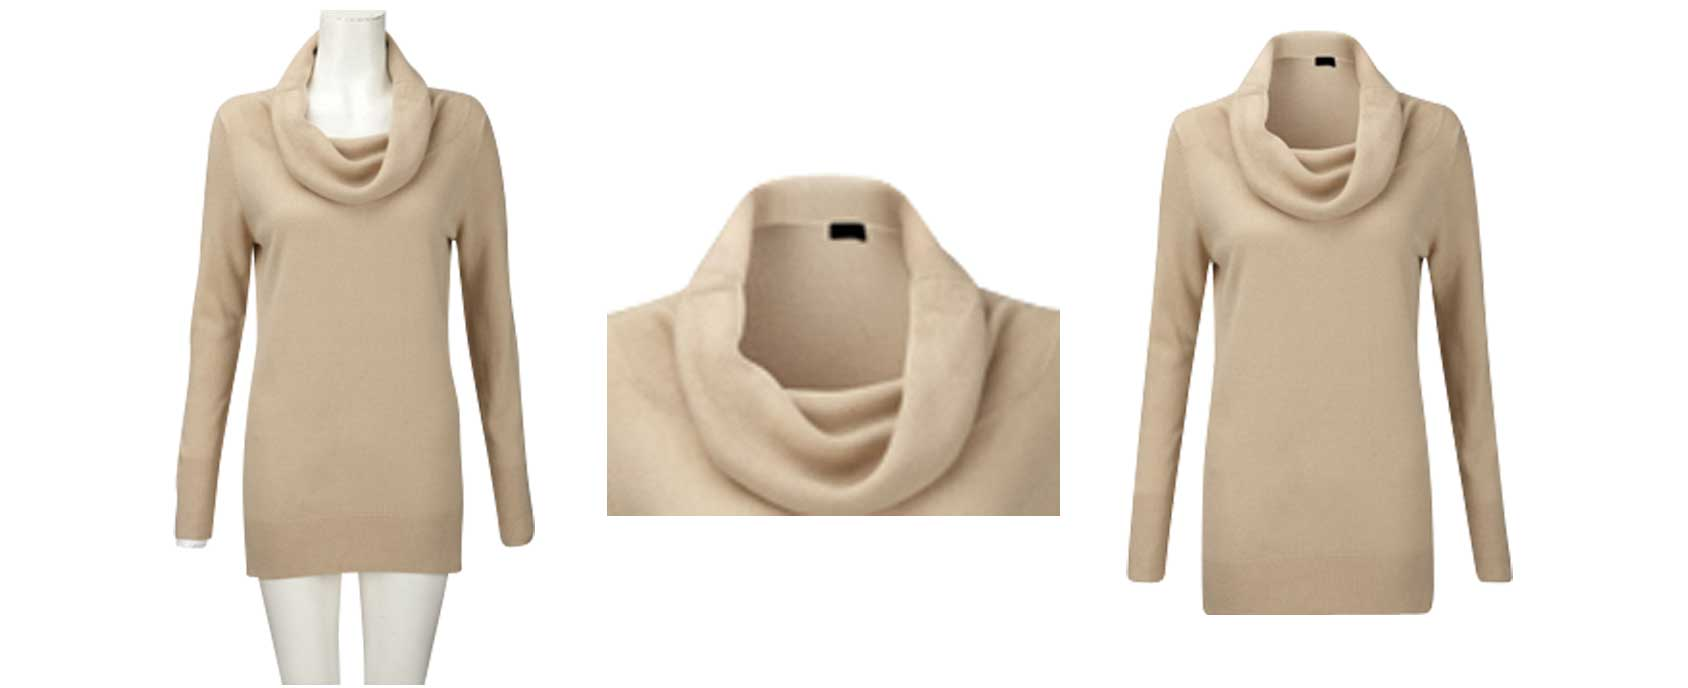 Ghost mannequin/Neck joint image by Alpha Clipping Path